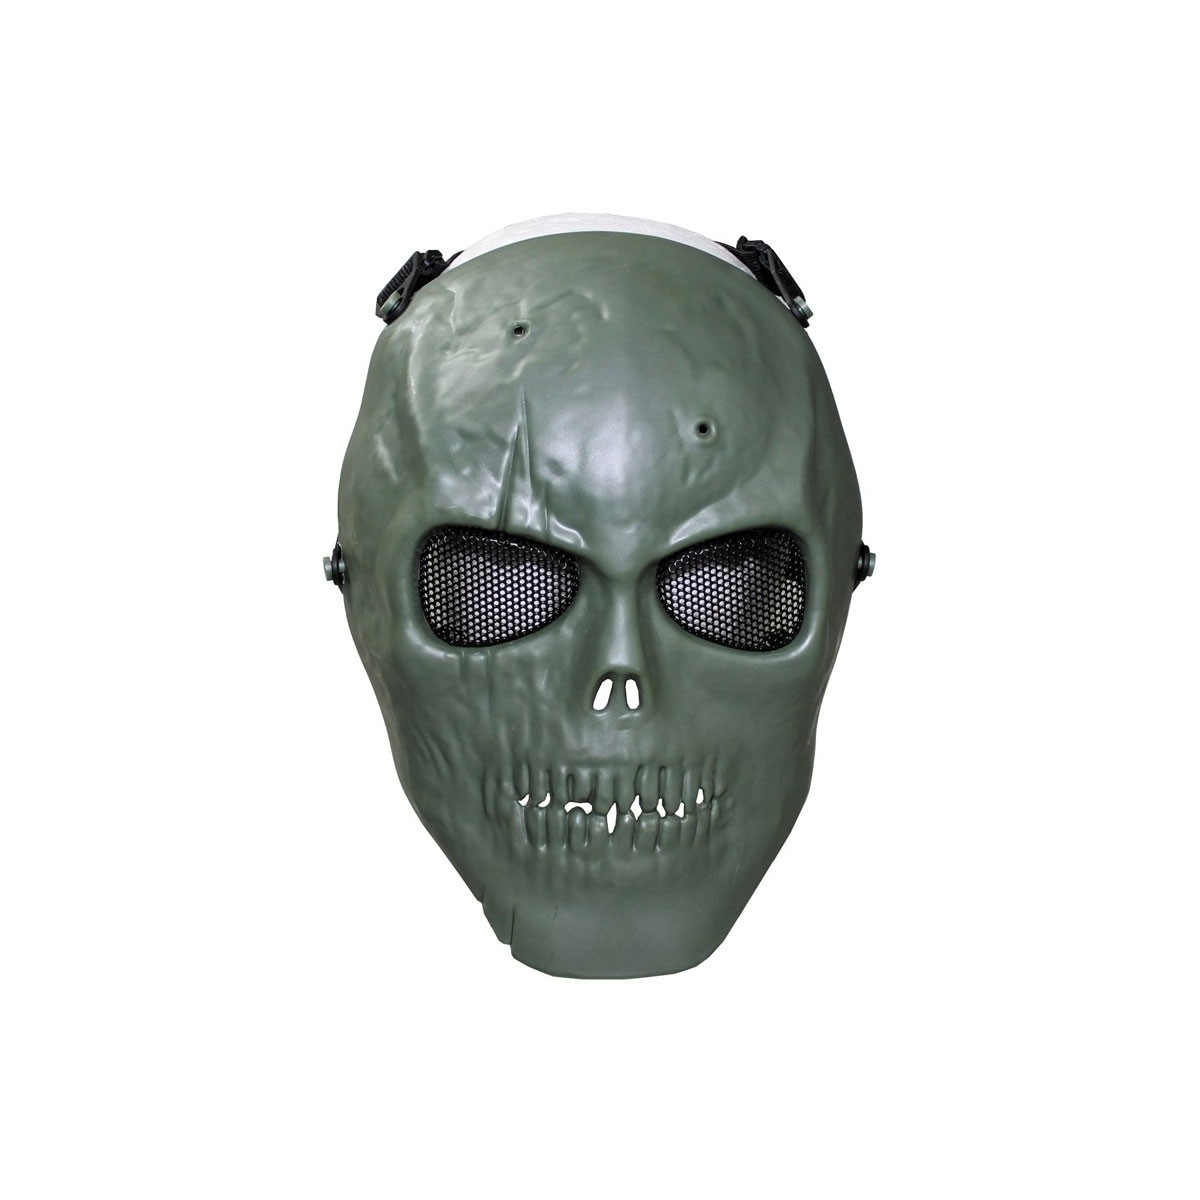 max fuchs face mask skull deco full protection od green